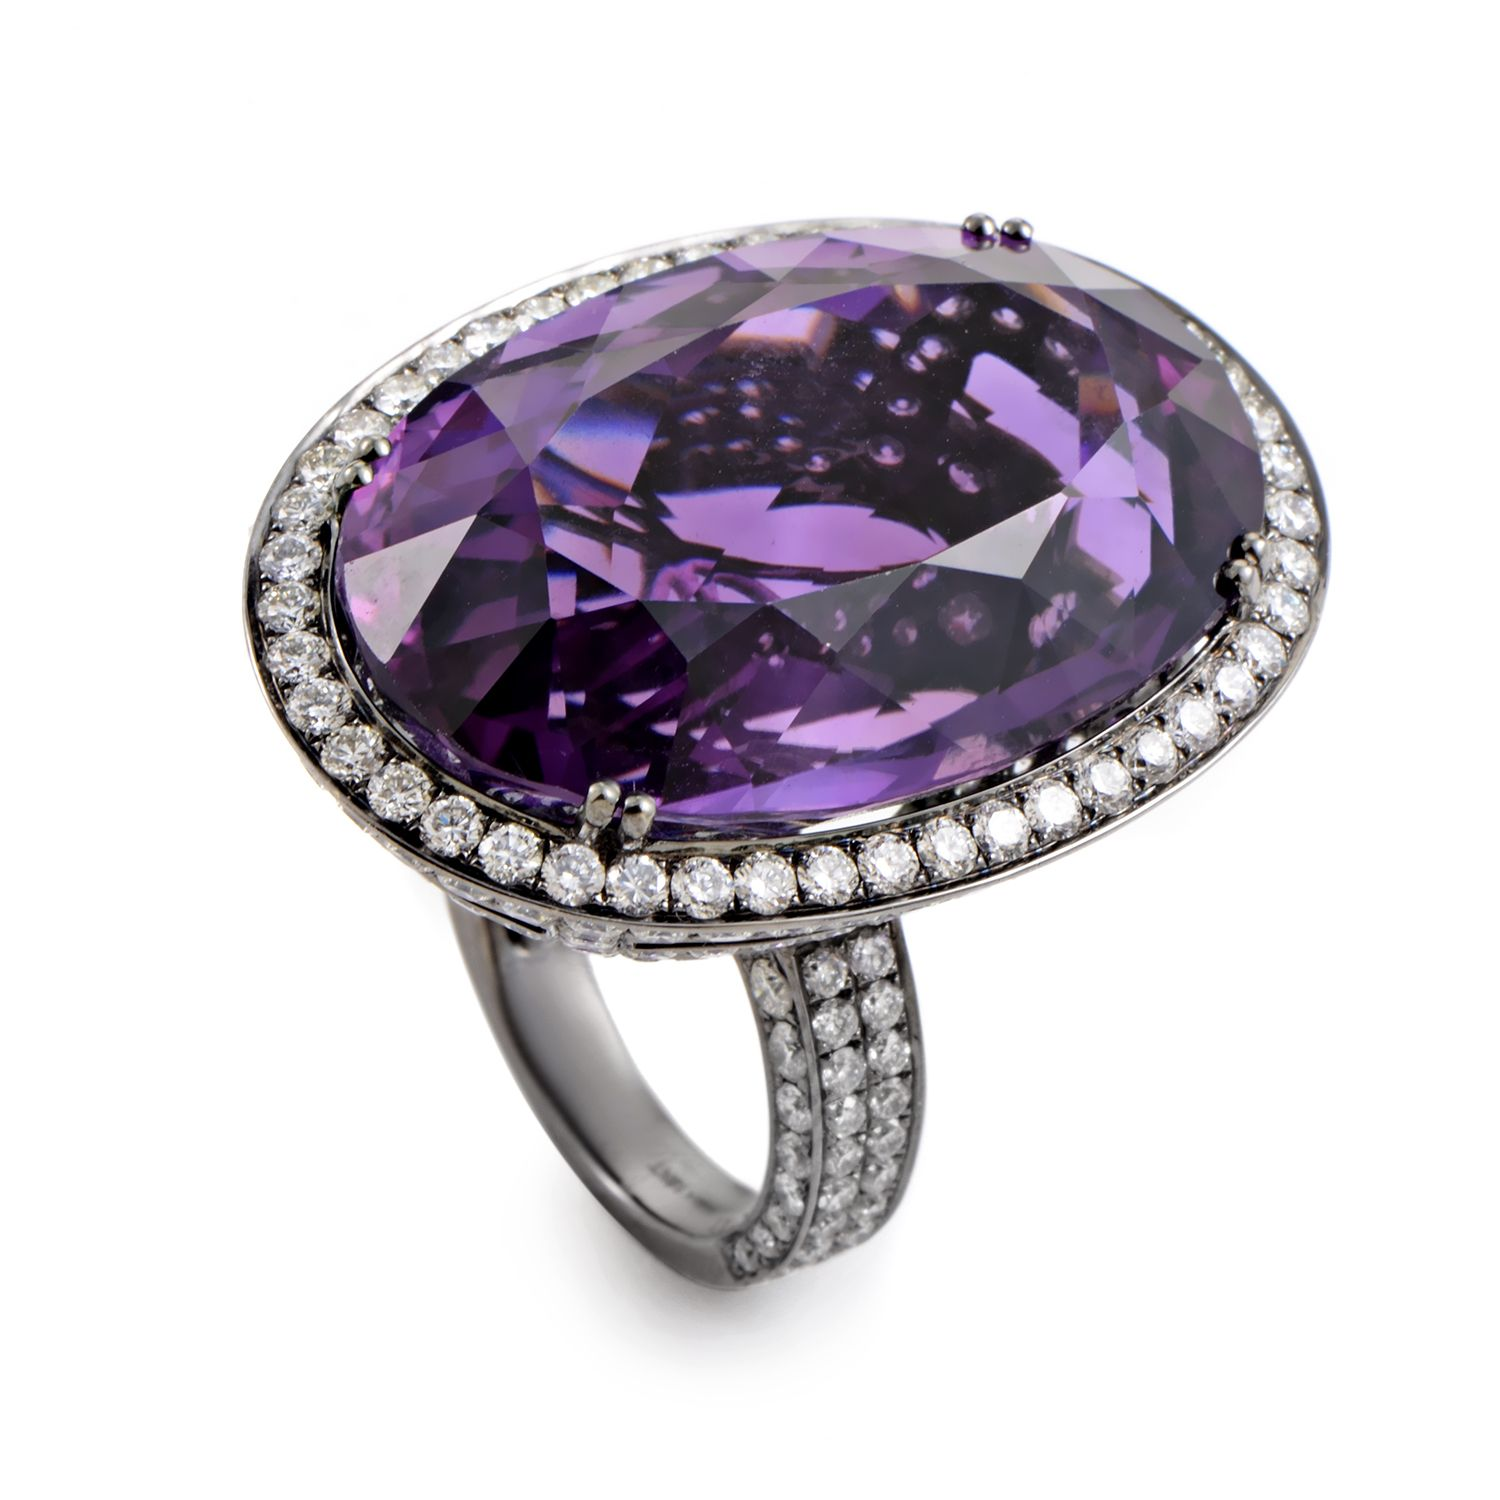 A tasteful selection of harmonious colors and prestigious materials, this ingenious ring from Odelia boasts a truly extraordinary design, setting a fa...